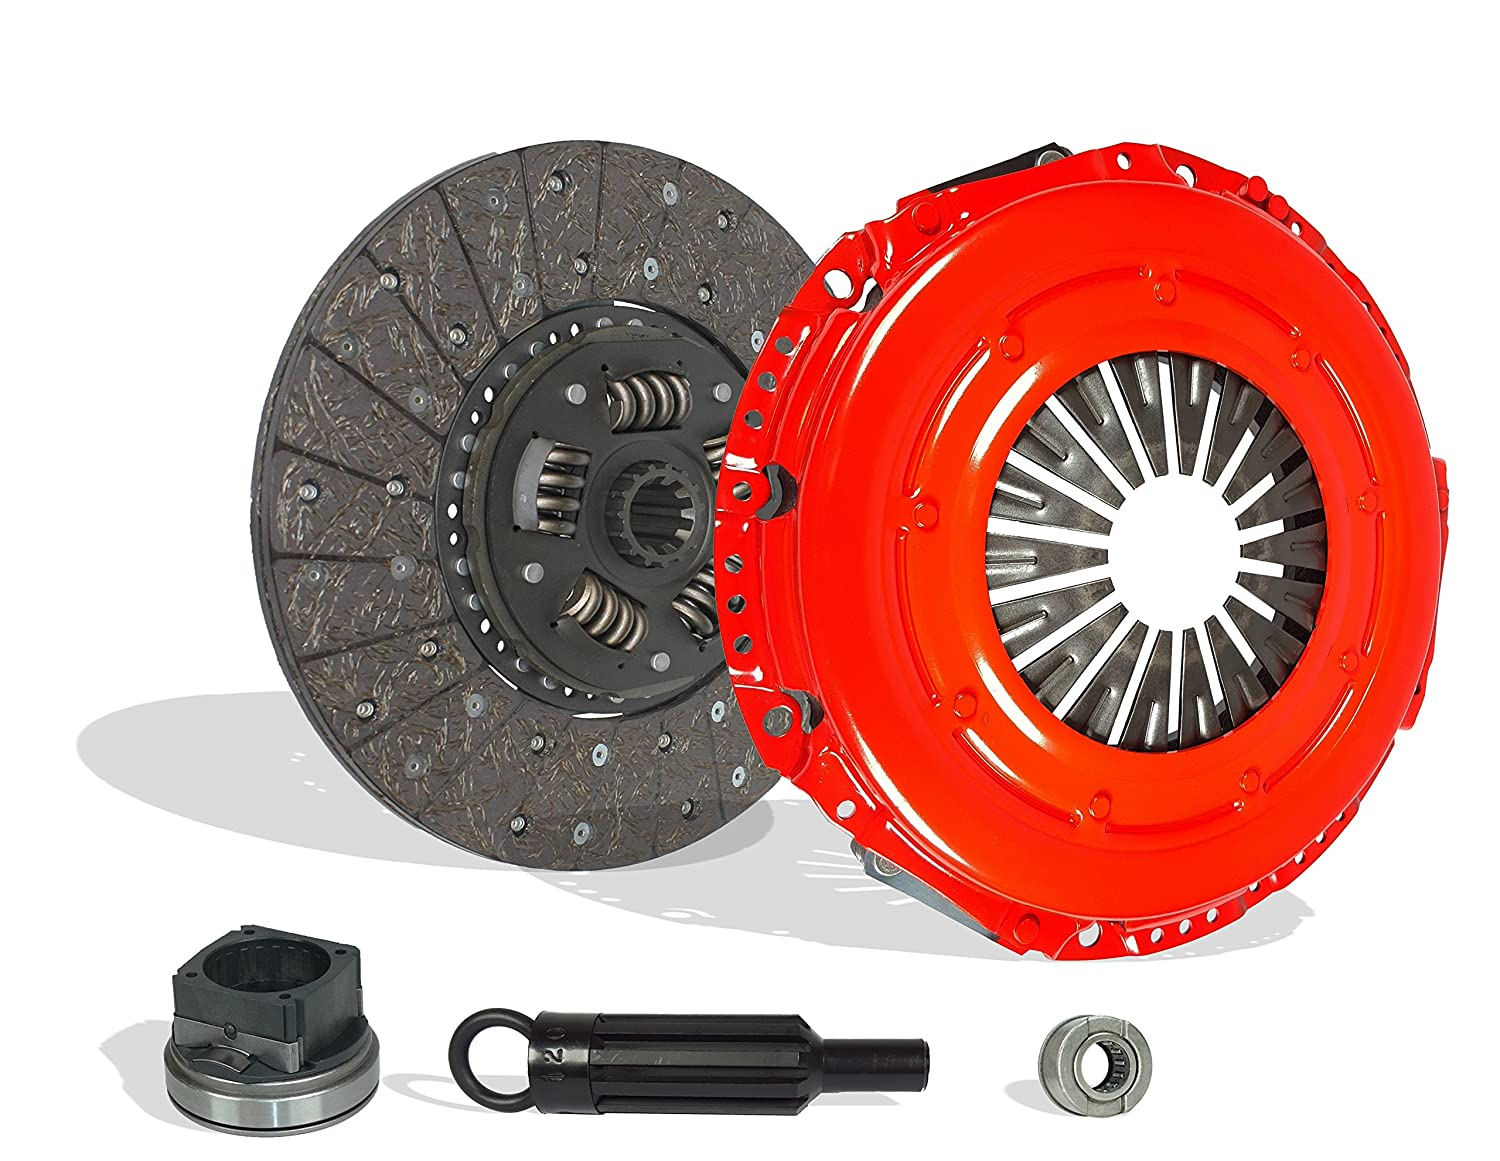 Stage 1 Clutch Kit Works With Ford F250 F350 F450 F550 Super Duty F53 Cabelas King Ranch Lariat XL XLT Base Harley-Davidson Edition FX4 1999-2010 6.8L V10 GAS SOHC Naturally Aspirated